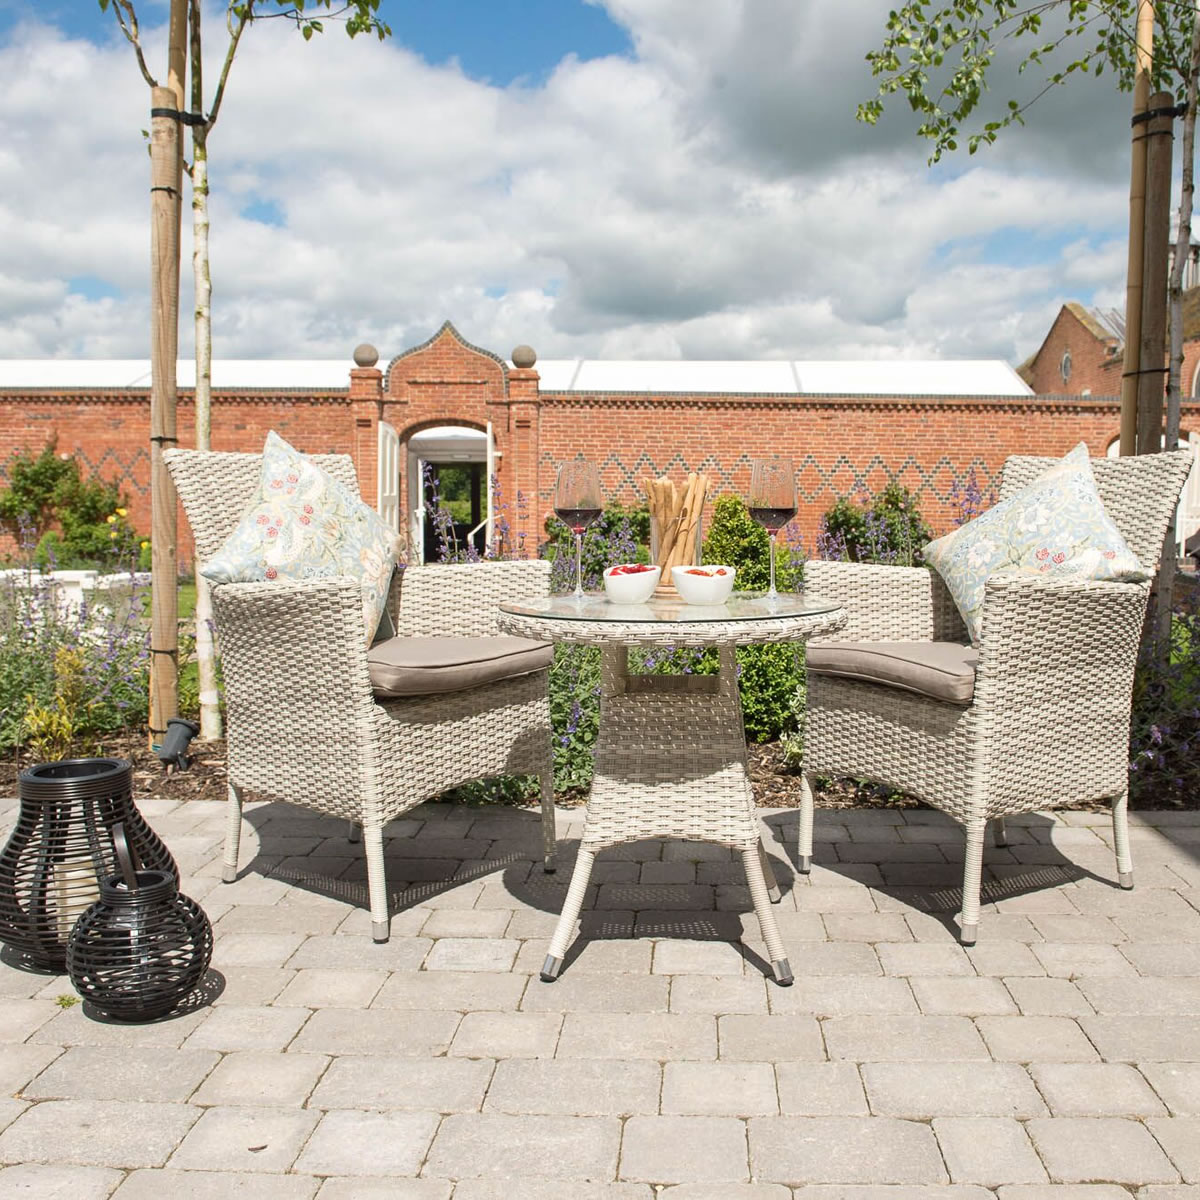 ... Garden Furniture 4 Less Cotswold Weave Bistro Furniture Set In Pebble  Taupe 163 299 Garden4less Uk ...